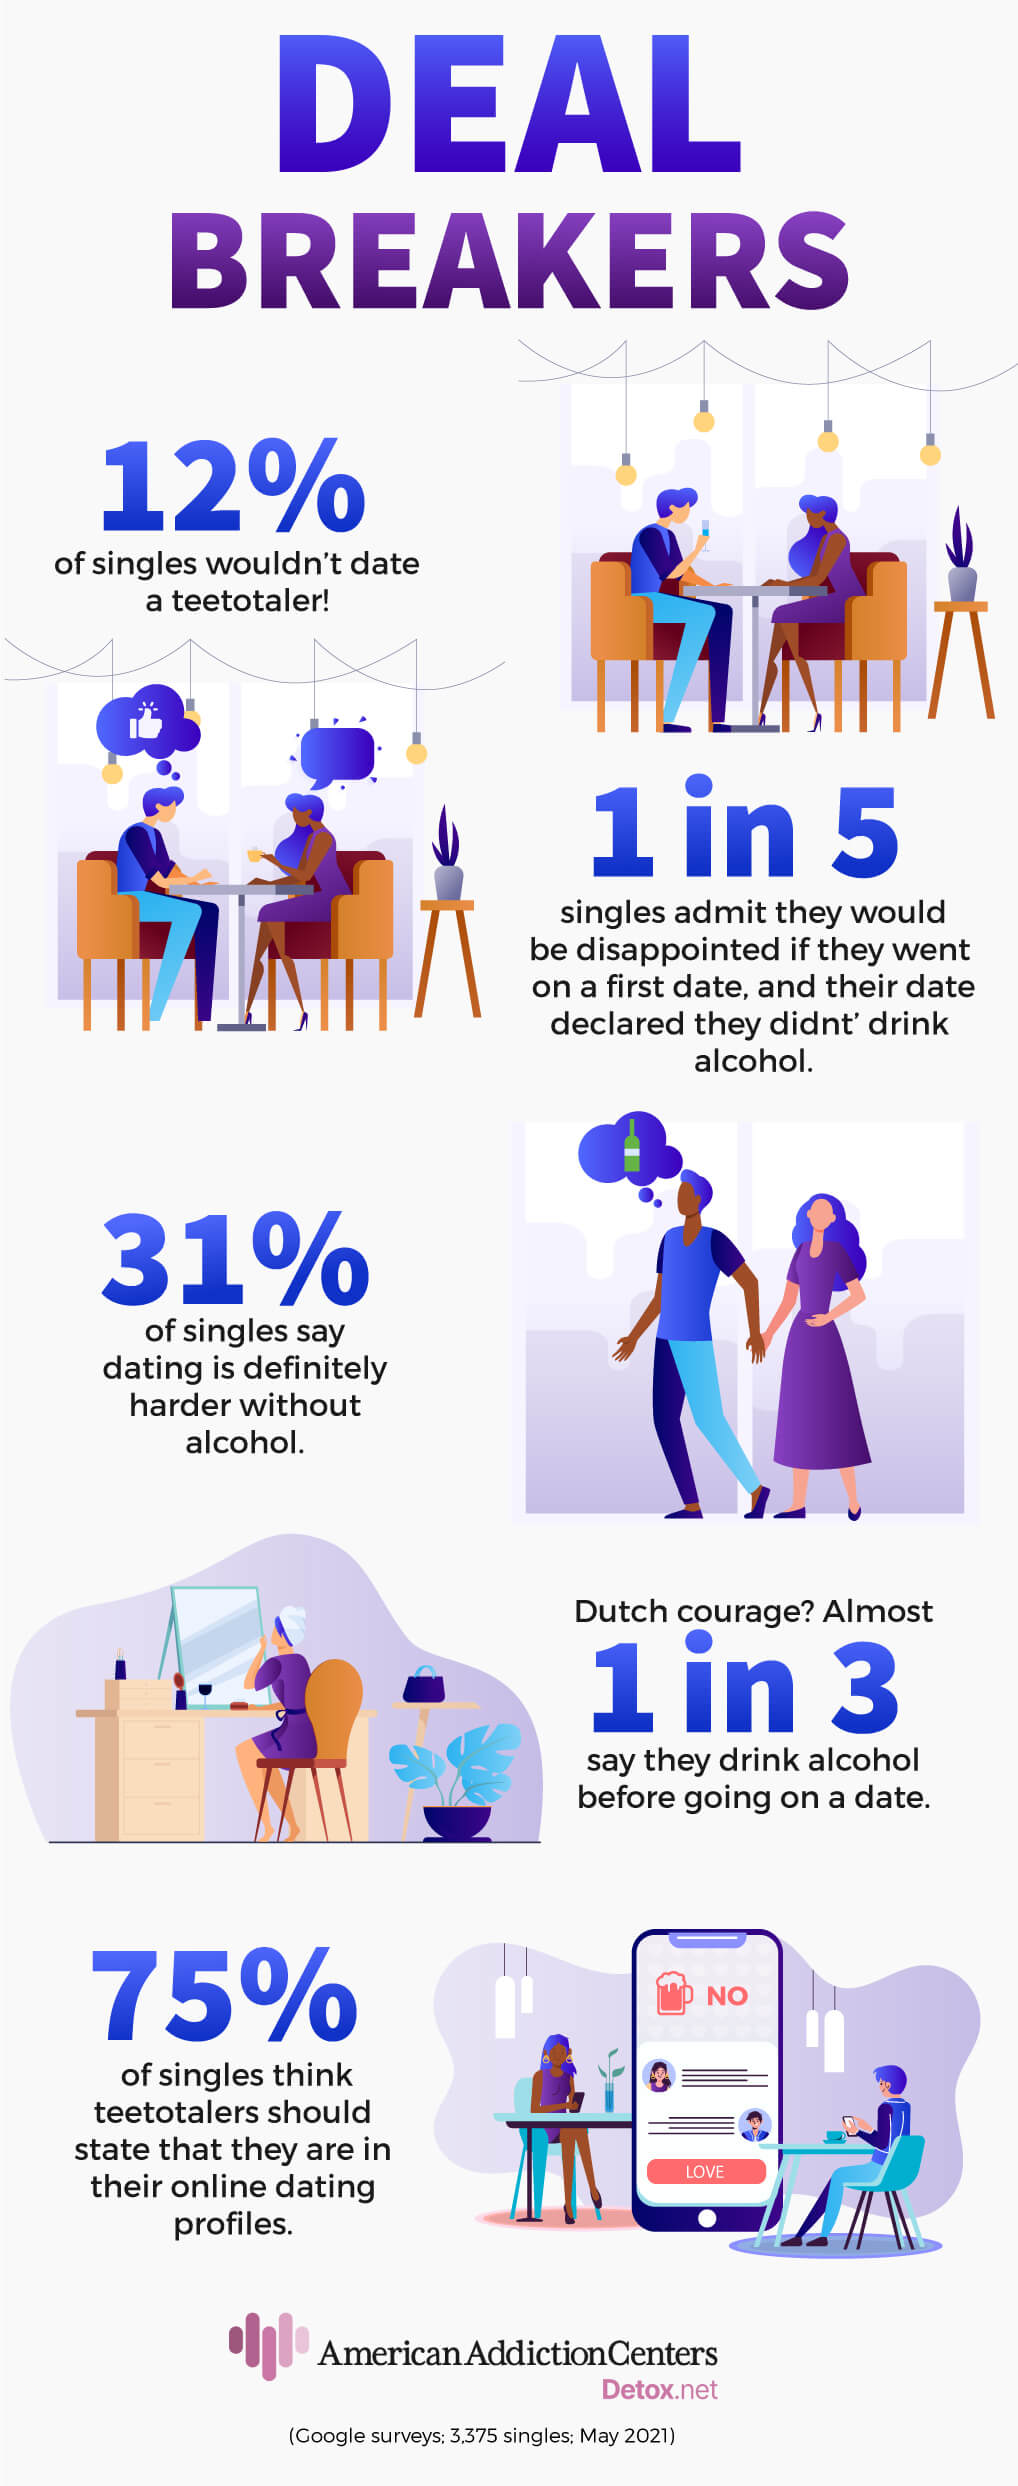 1 in 10 singles would not date a teetotaler, reveals poll